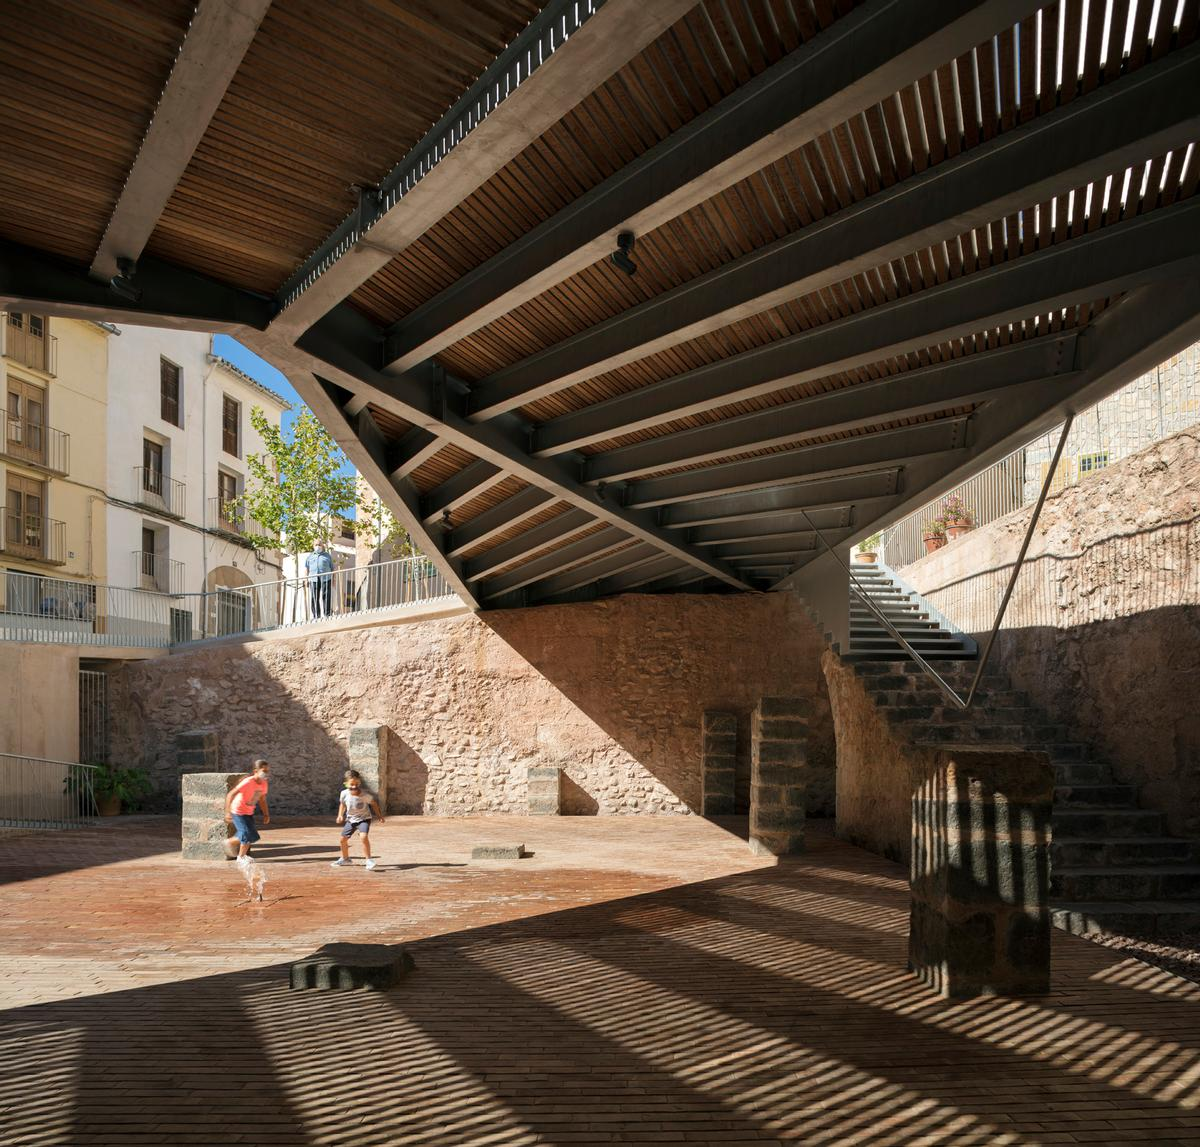 The award for Exterior Spaces was given to the Synagogue Square project in Onda, Castellón / Milena Villalba